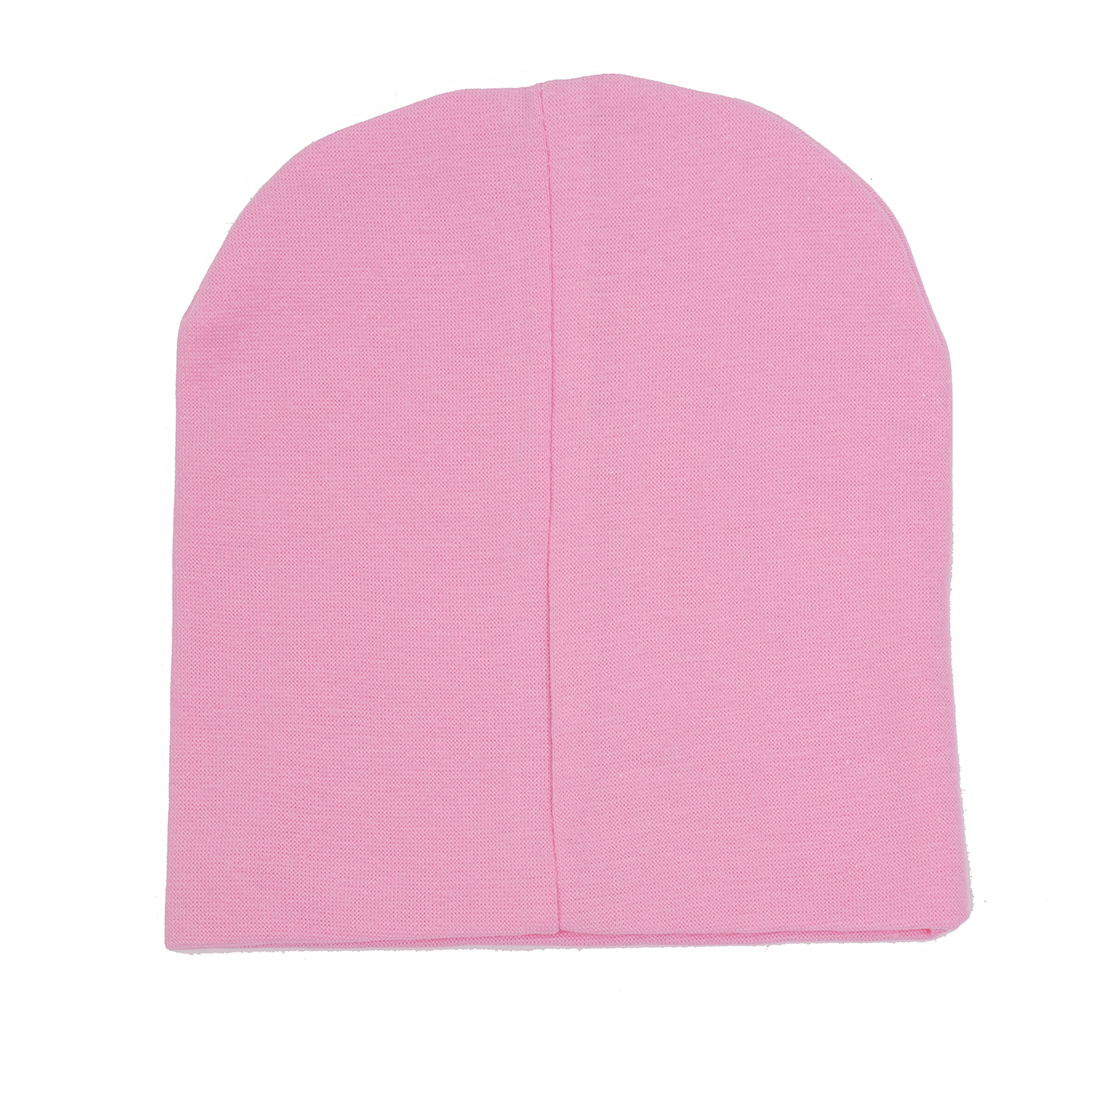 Unisex Baby Girls Boys Kids Soft Cotton Cap Love Heart Winter Warm Hat baby hat/cap Pink(I Love MAMA) lovely toddler first walkers baby boys and girls cotton shoes soft bottom hook sneakers i love mom dad